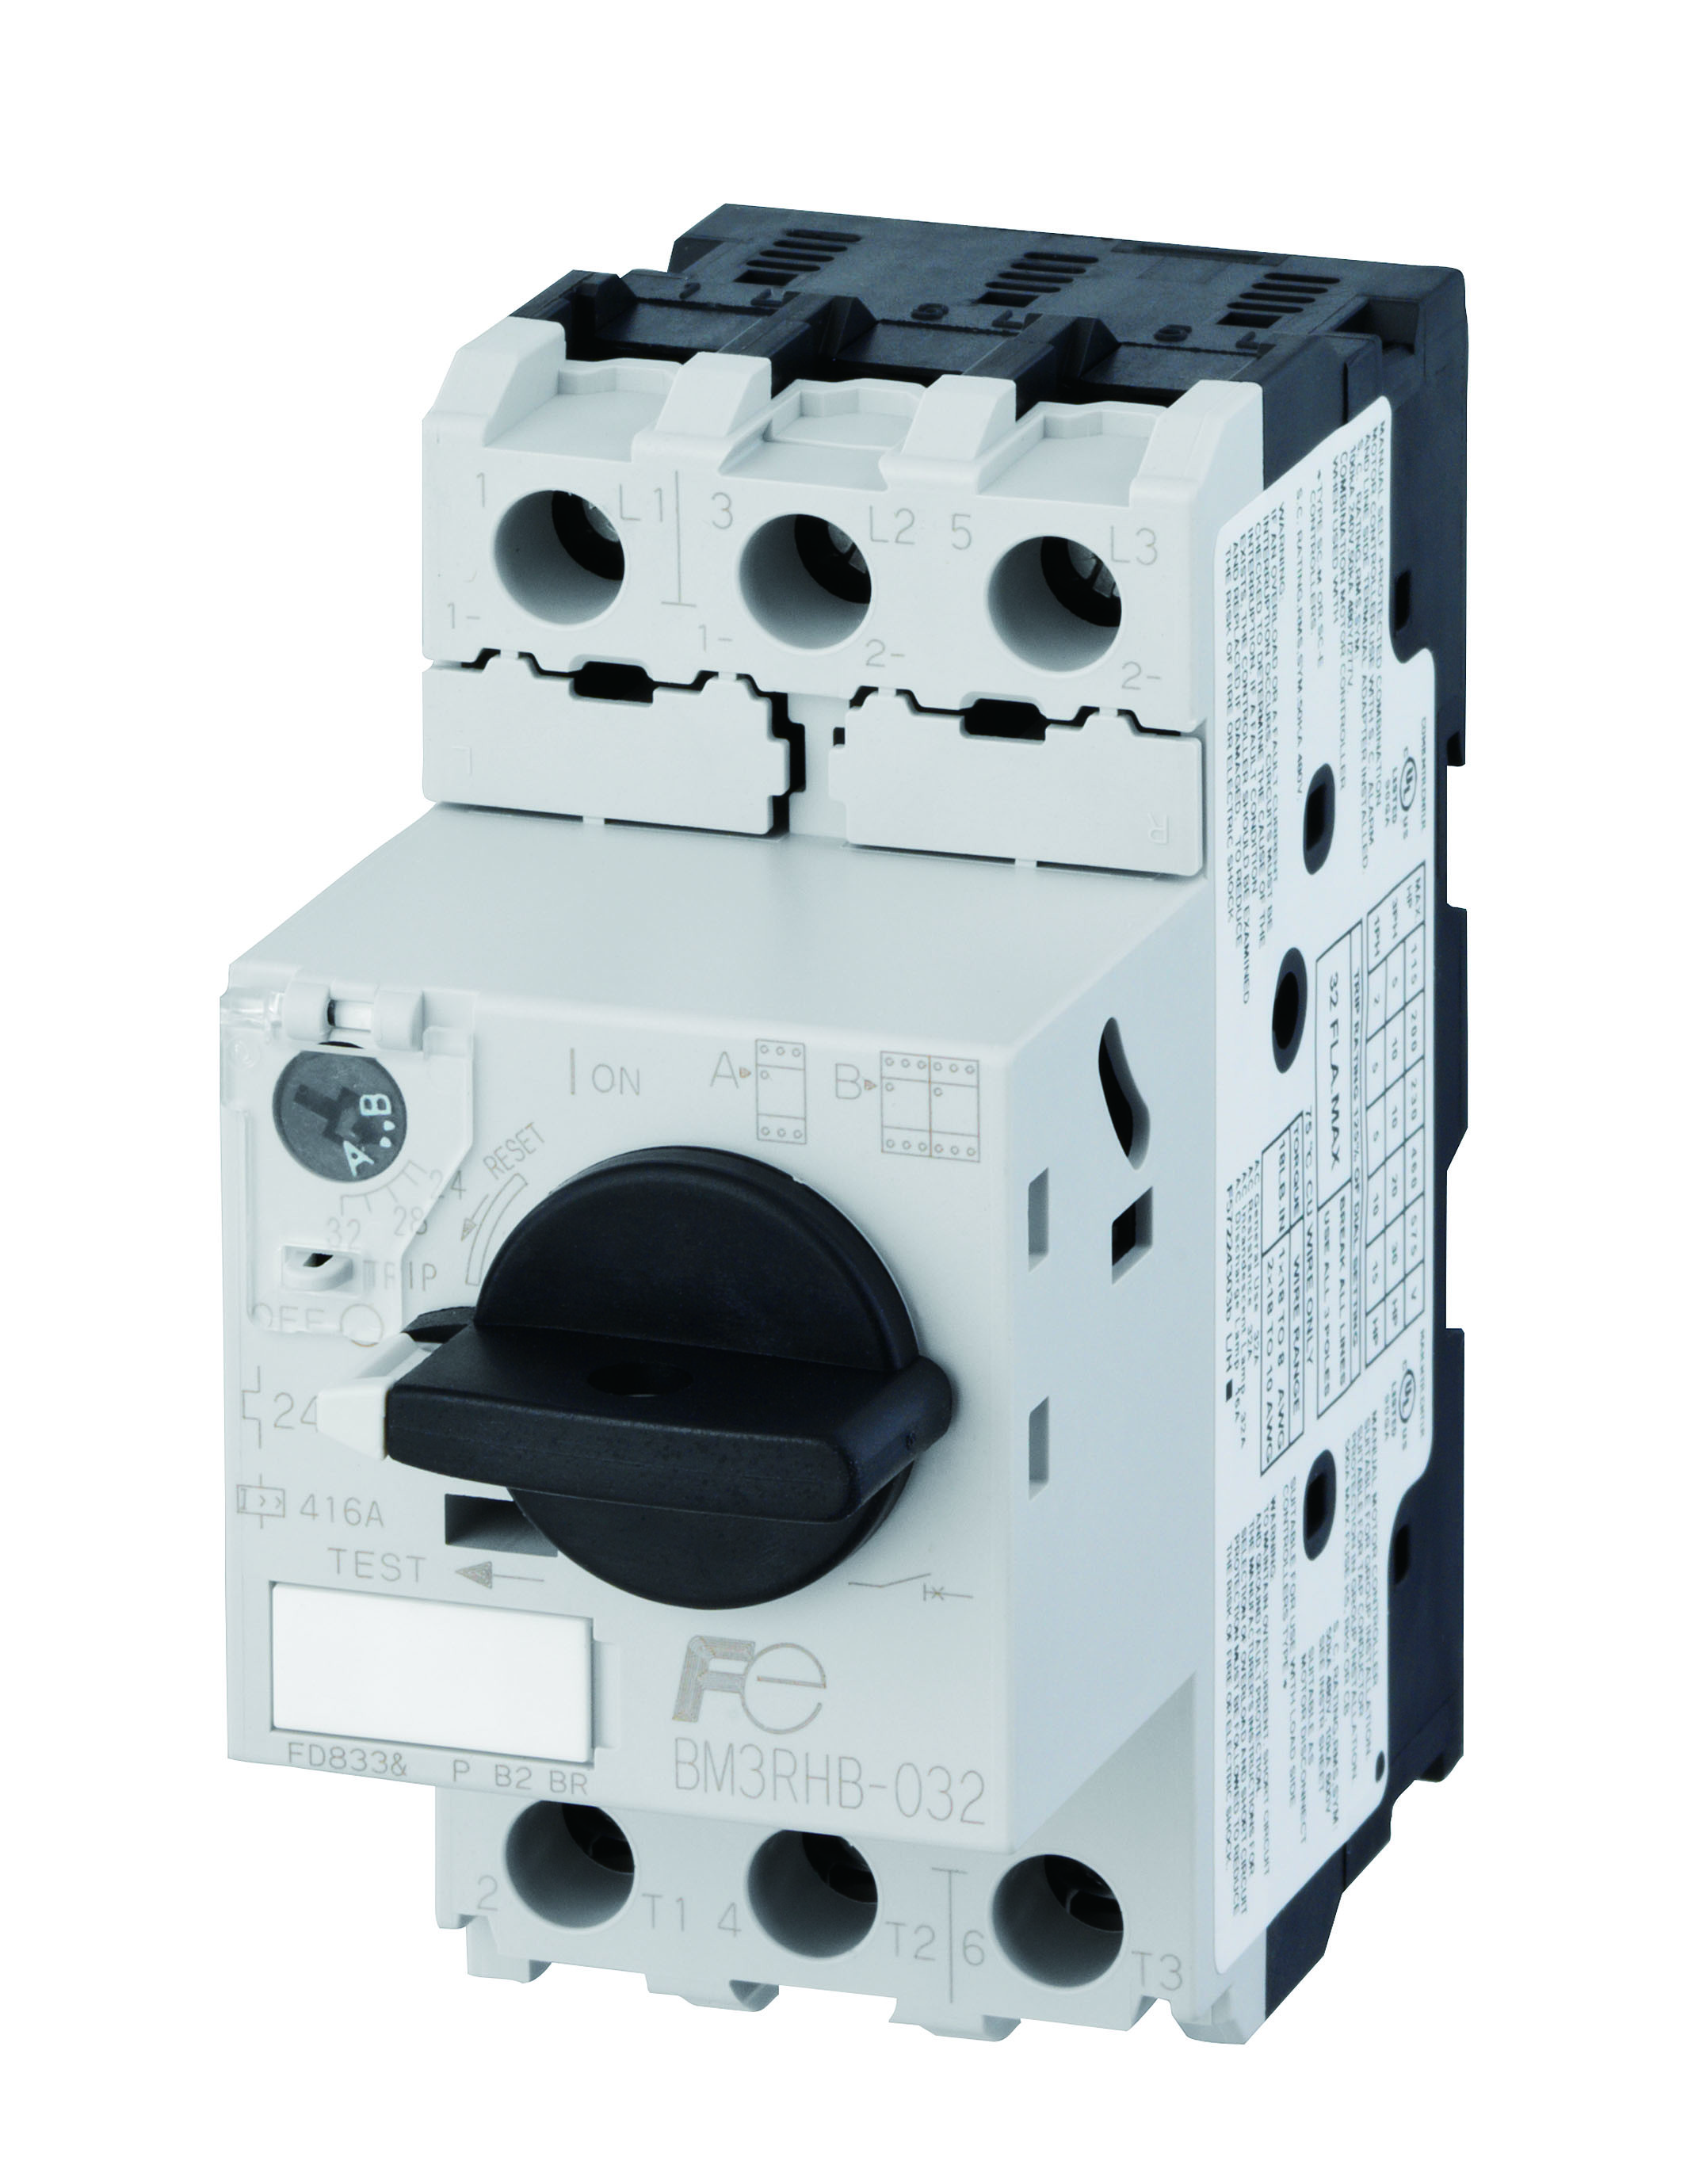 Power Distribution & Control Devices - Industrial Automation ...